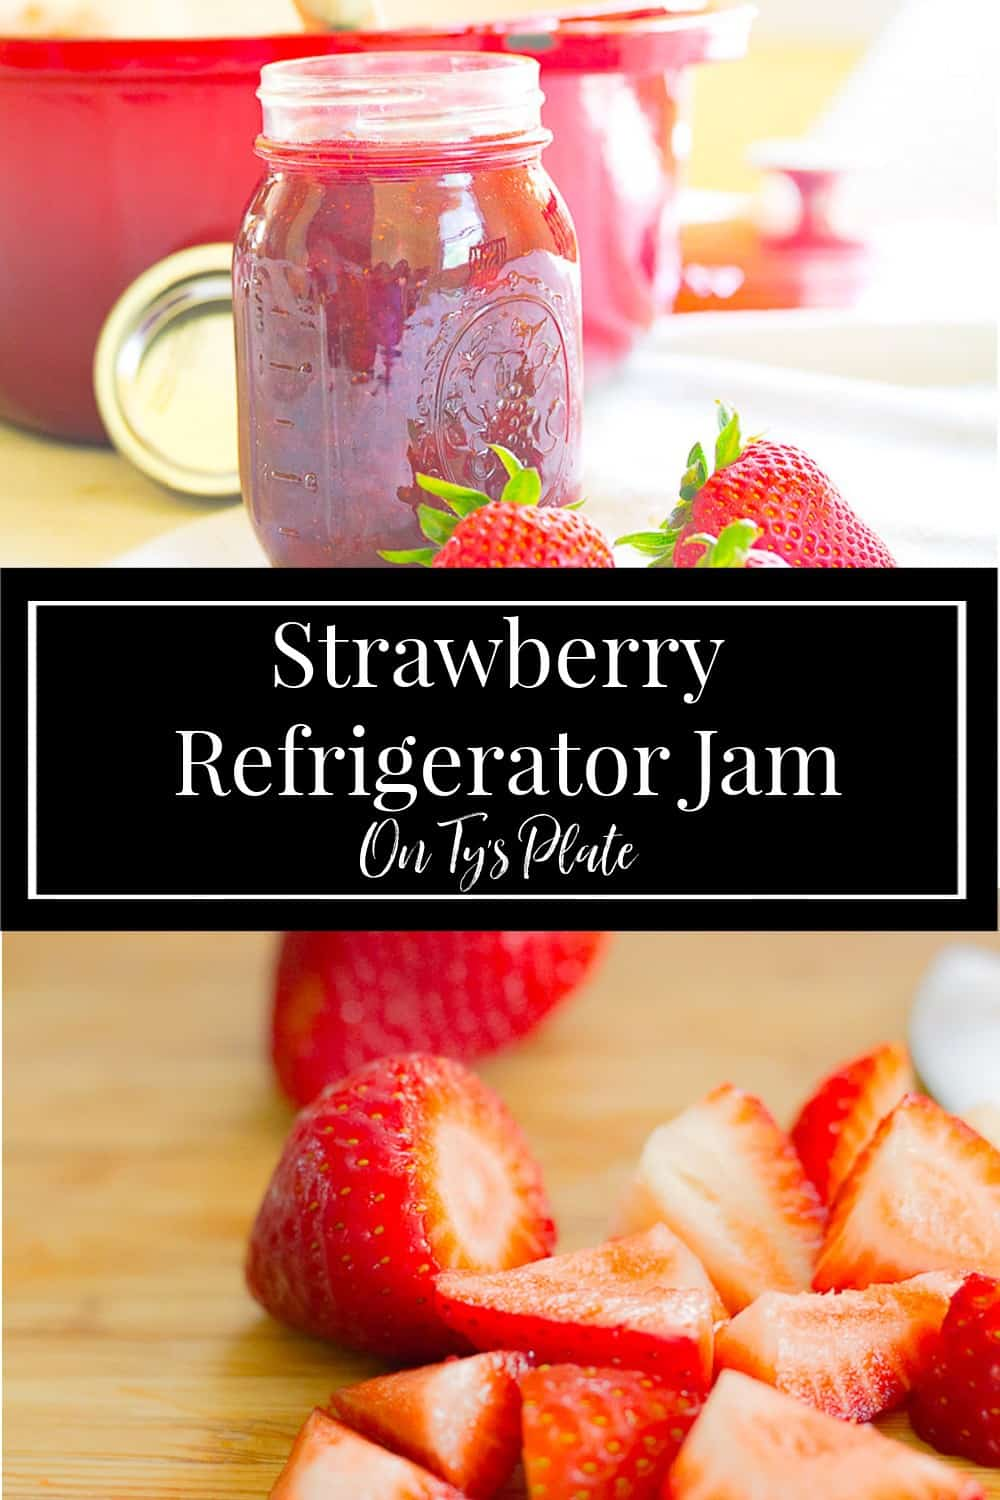 Strawberry Refrigerator Jam